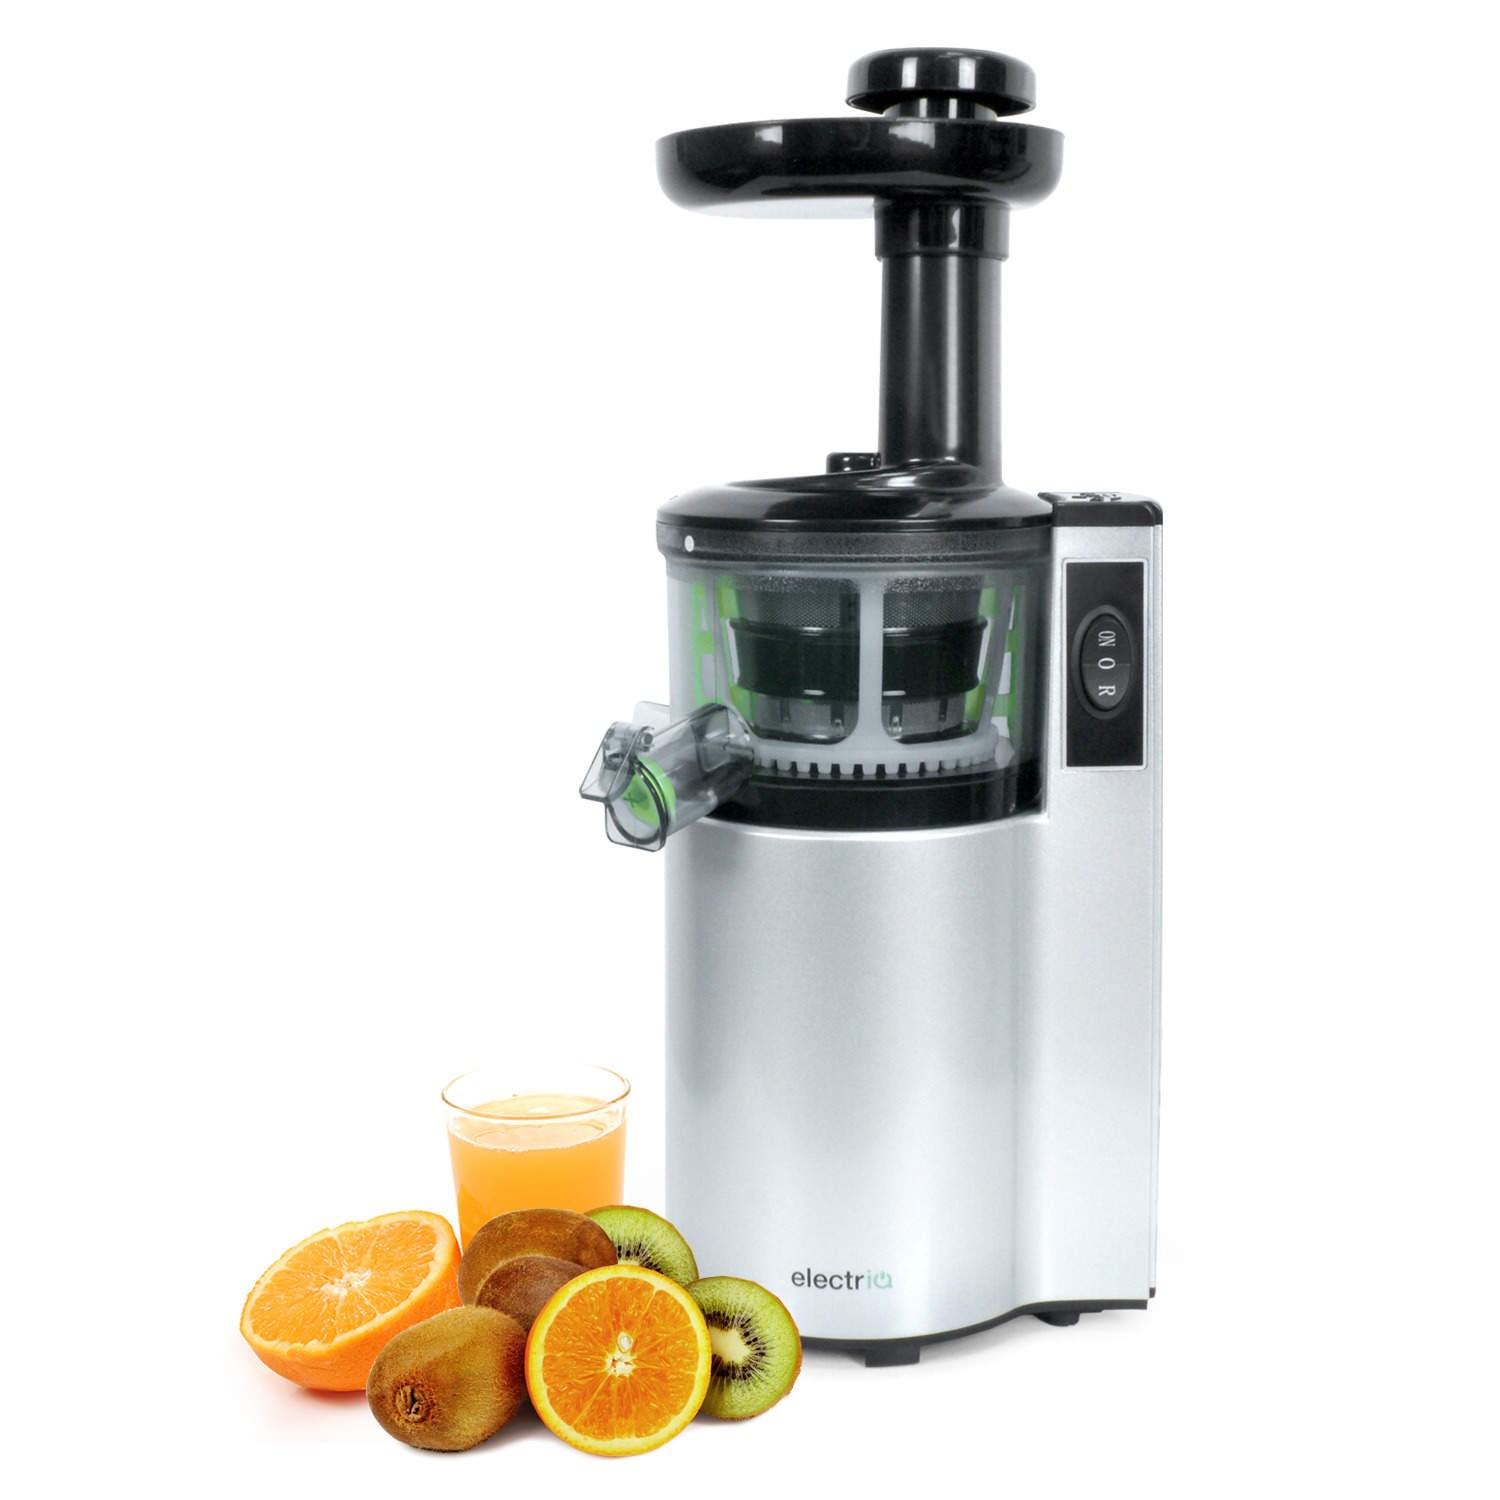 Slow Juicer Horizontal Or Vertical : ElectriQ vertical Slow Masticating Juicer Fruit vegetable Juice Extractor eBay